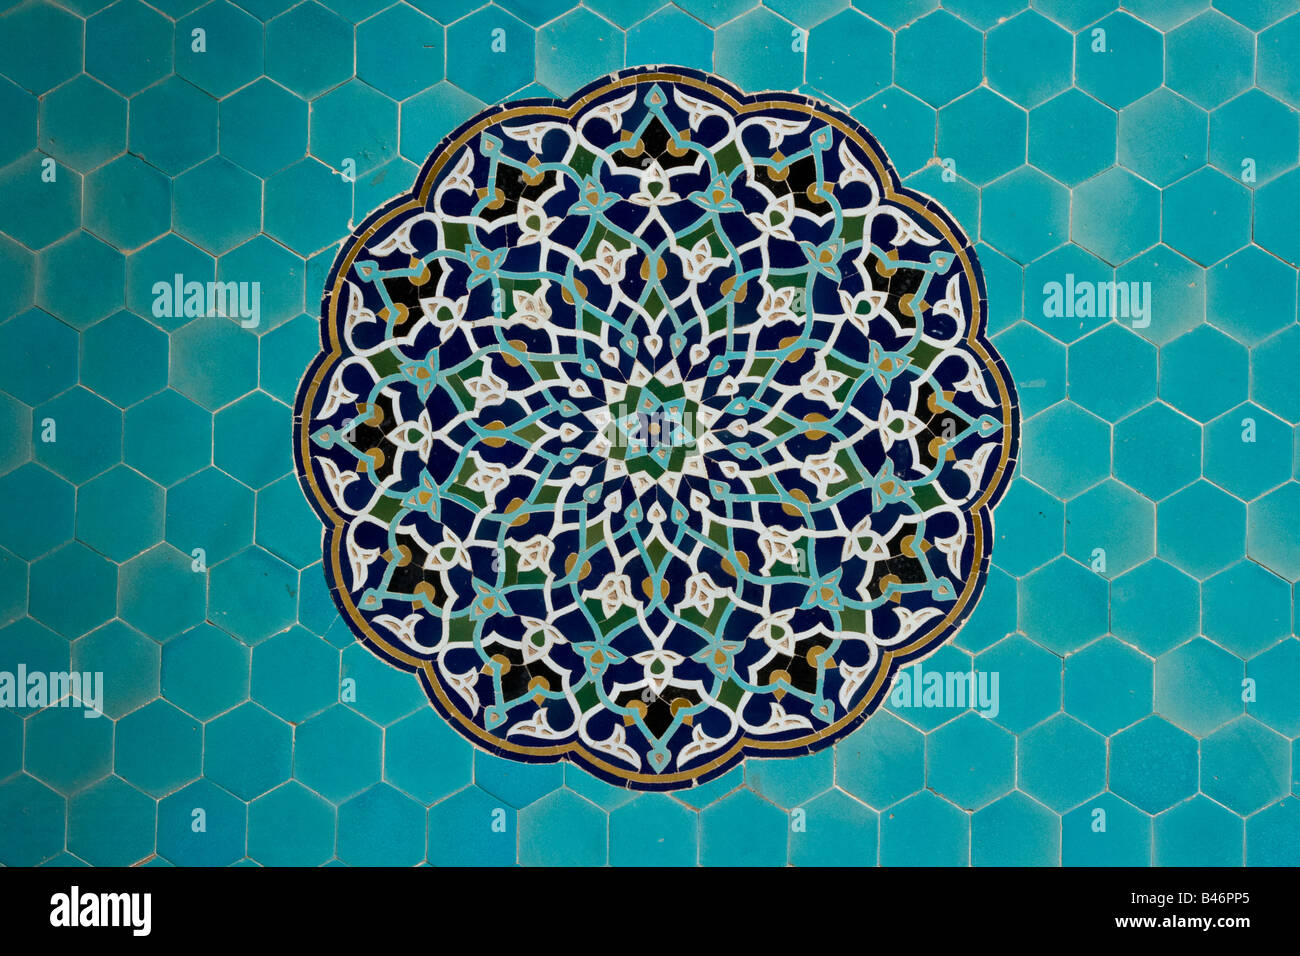 Decorative Tiles Inside Jameh Masjid Or Friday Mosque In